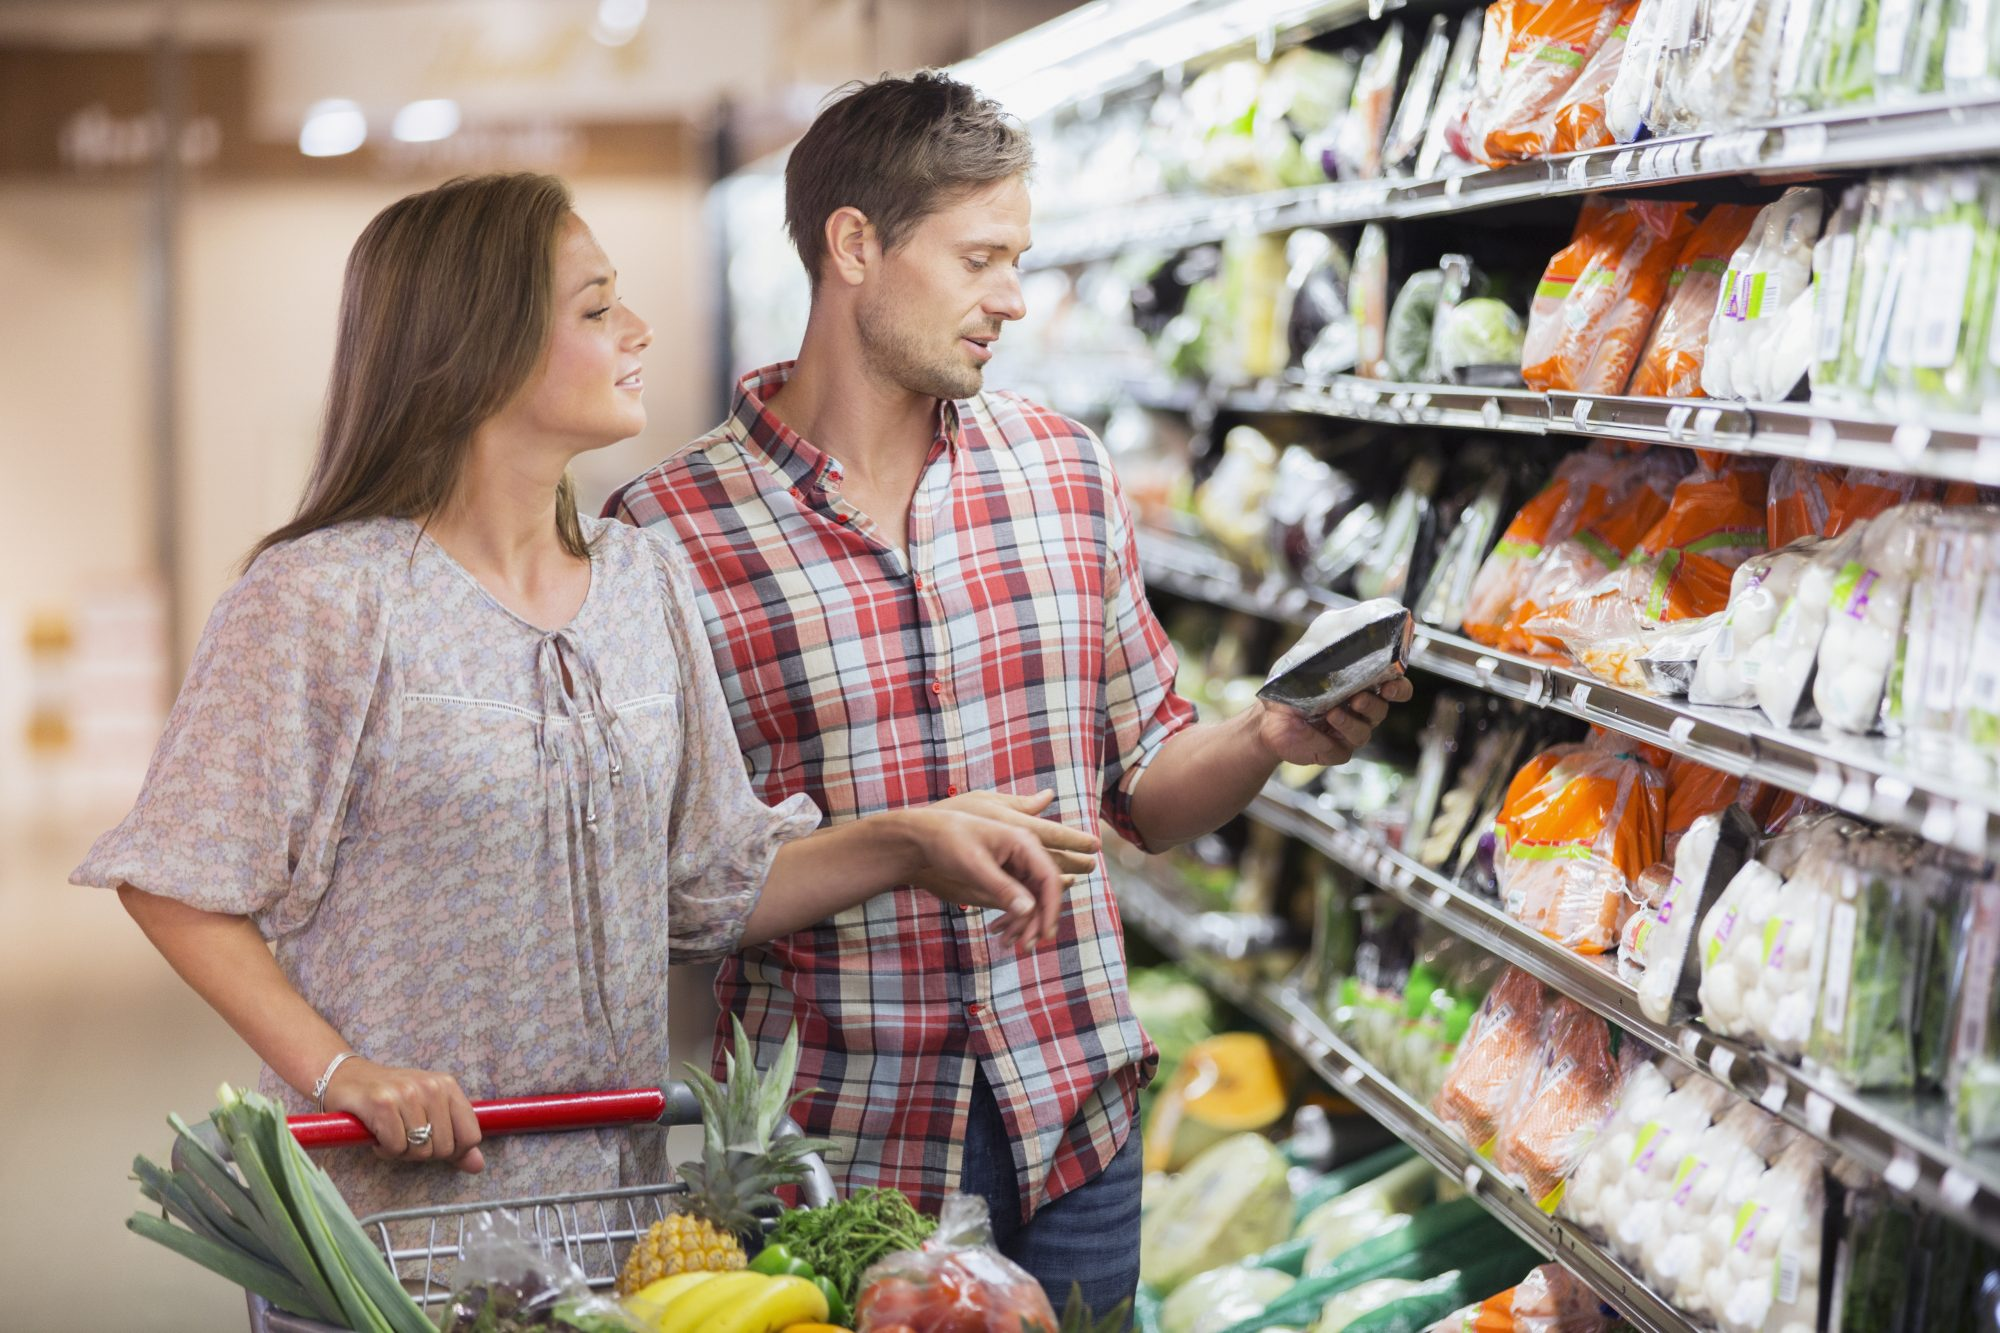 Why the Grocery Store Is the Perfect Spot for a Date